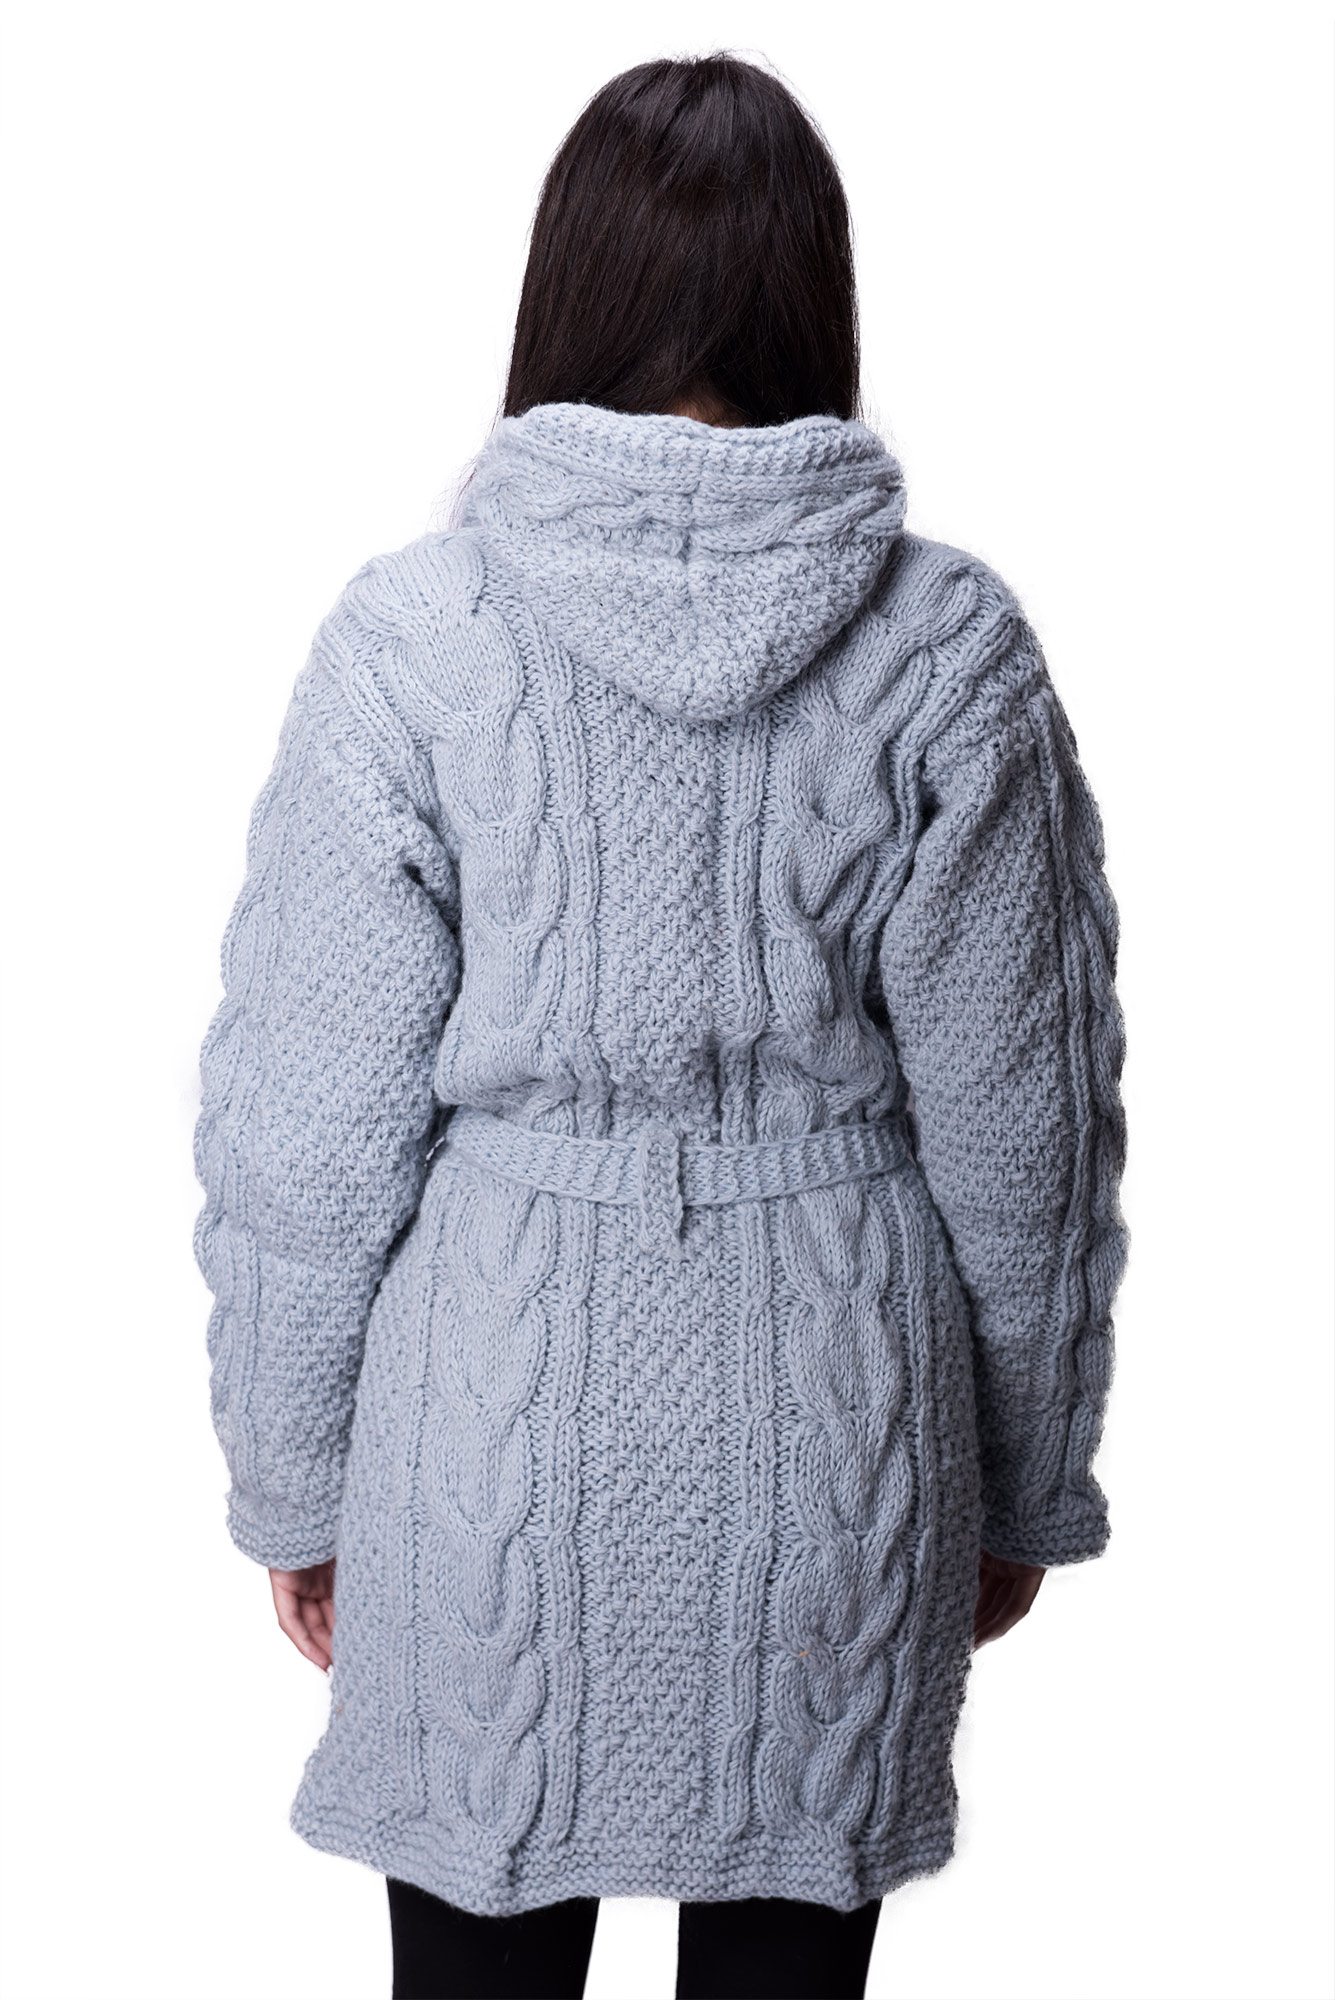 Himalayan Mountain Jacket Full Length Cable Knit, Blue